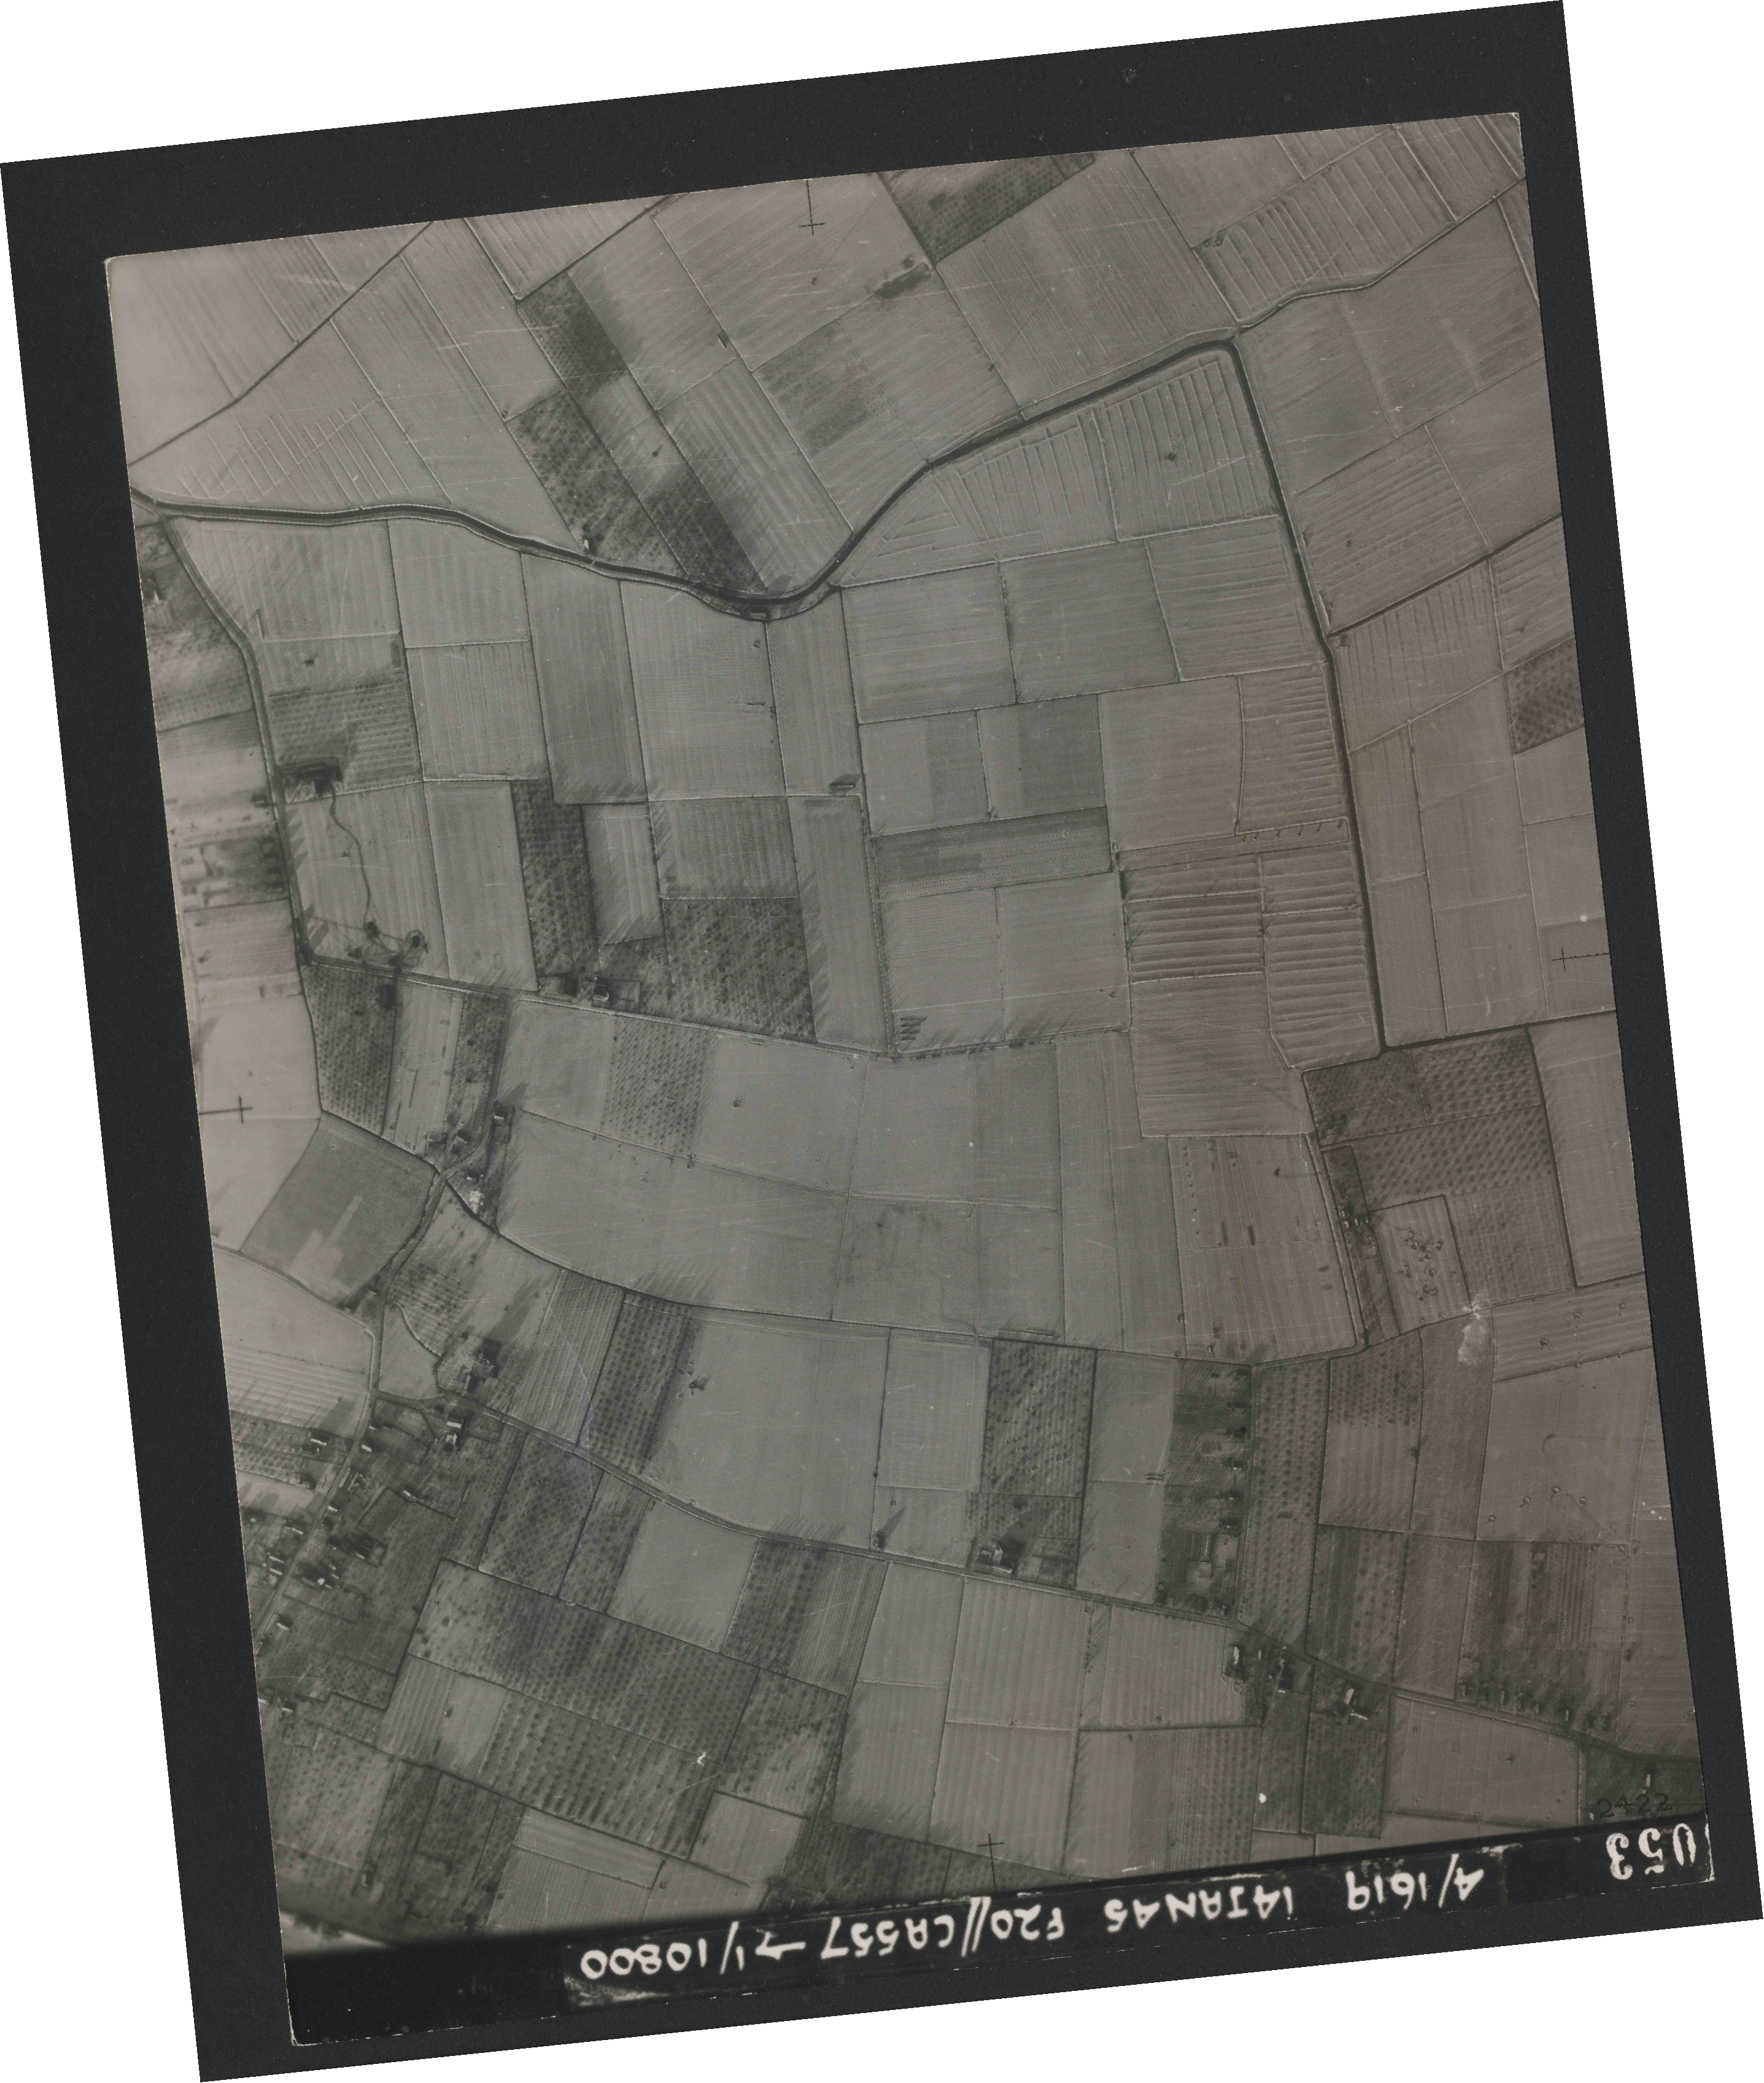 Collection RAF aerial photos 1940-1945 - flight 291, run 04, photo 3053